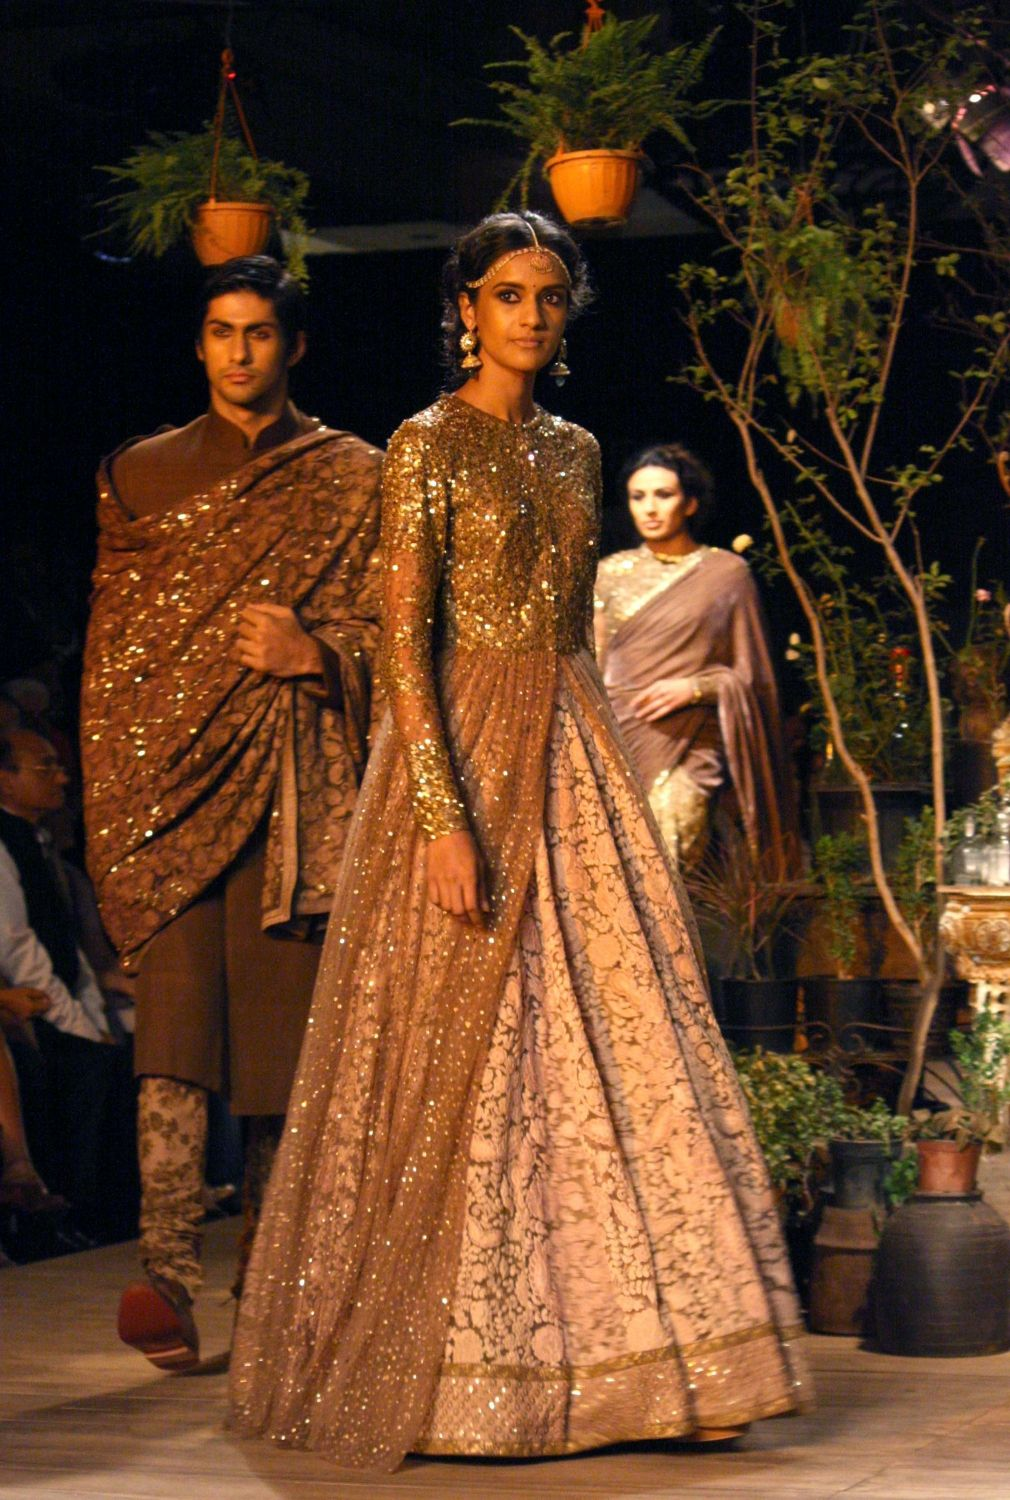 Sabyasachi Beautiful Available At Bibi London Email Mandy On Contact Bibilondon Com For Info Indian Bridal Wear Indian Bridal Fashion Indian Bridal